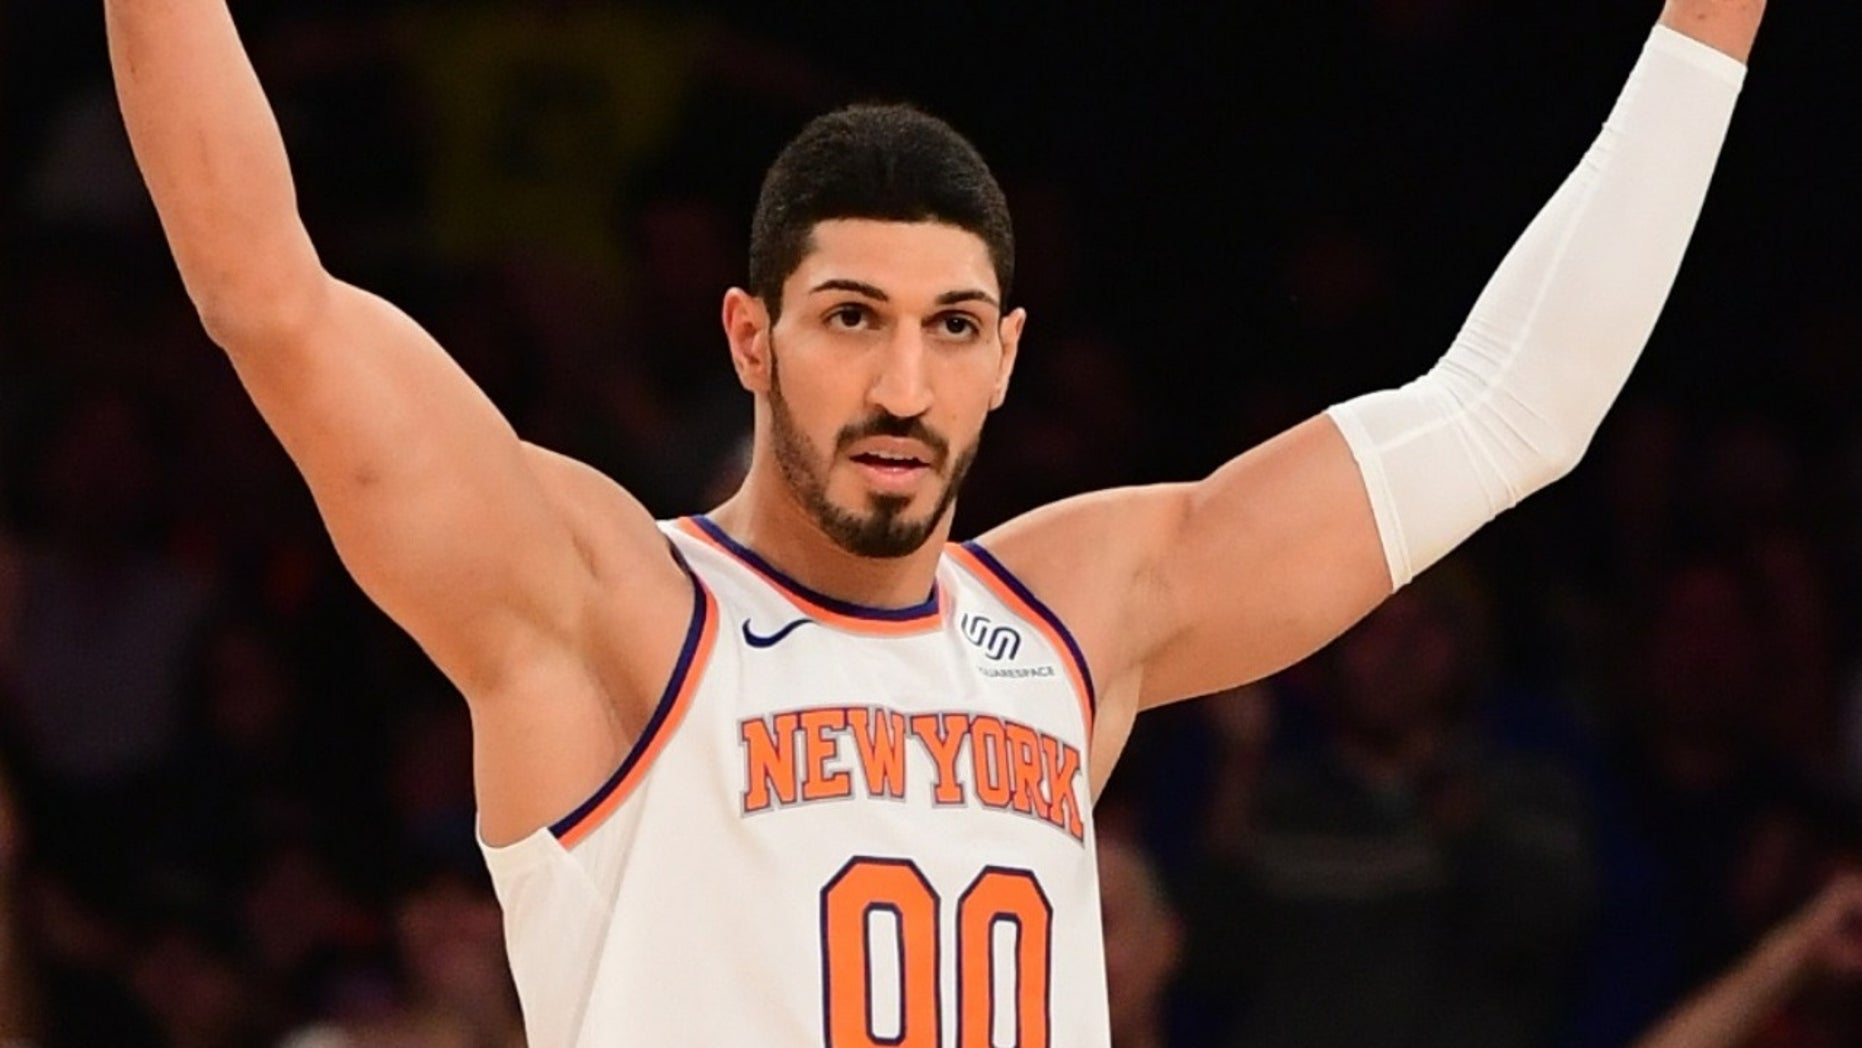 Knicks' Kanter to skip London trip, fearing Erdogan reprisal